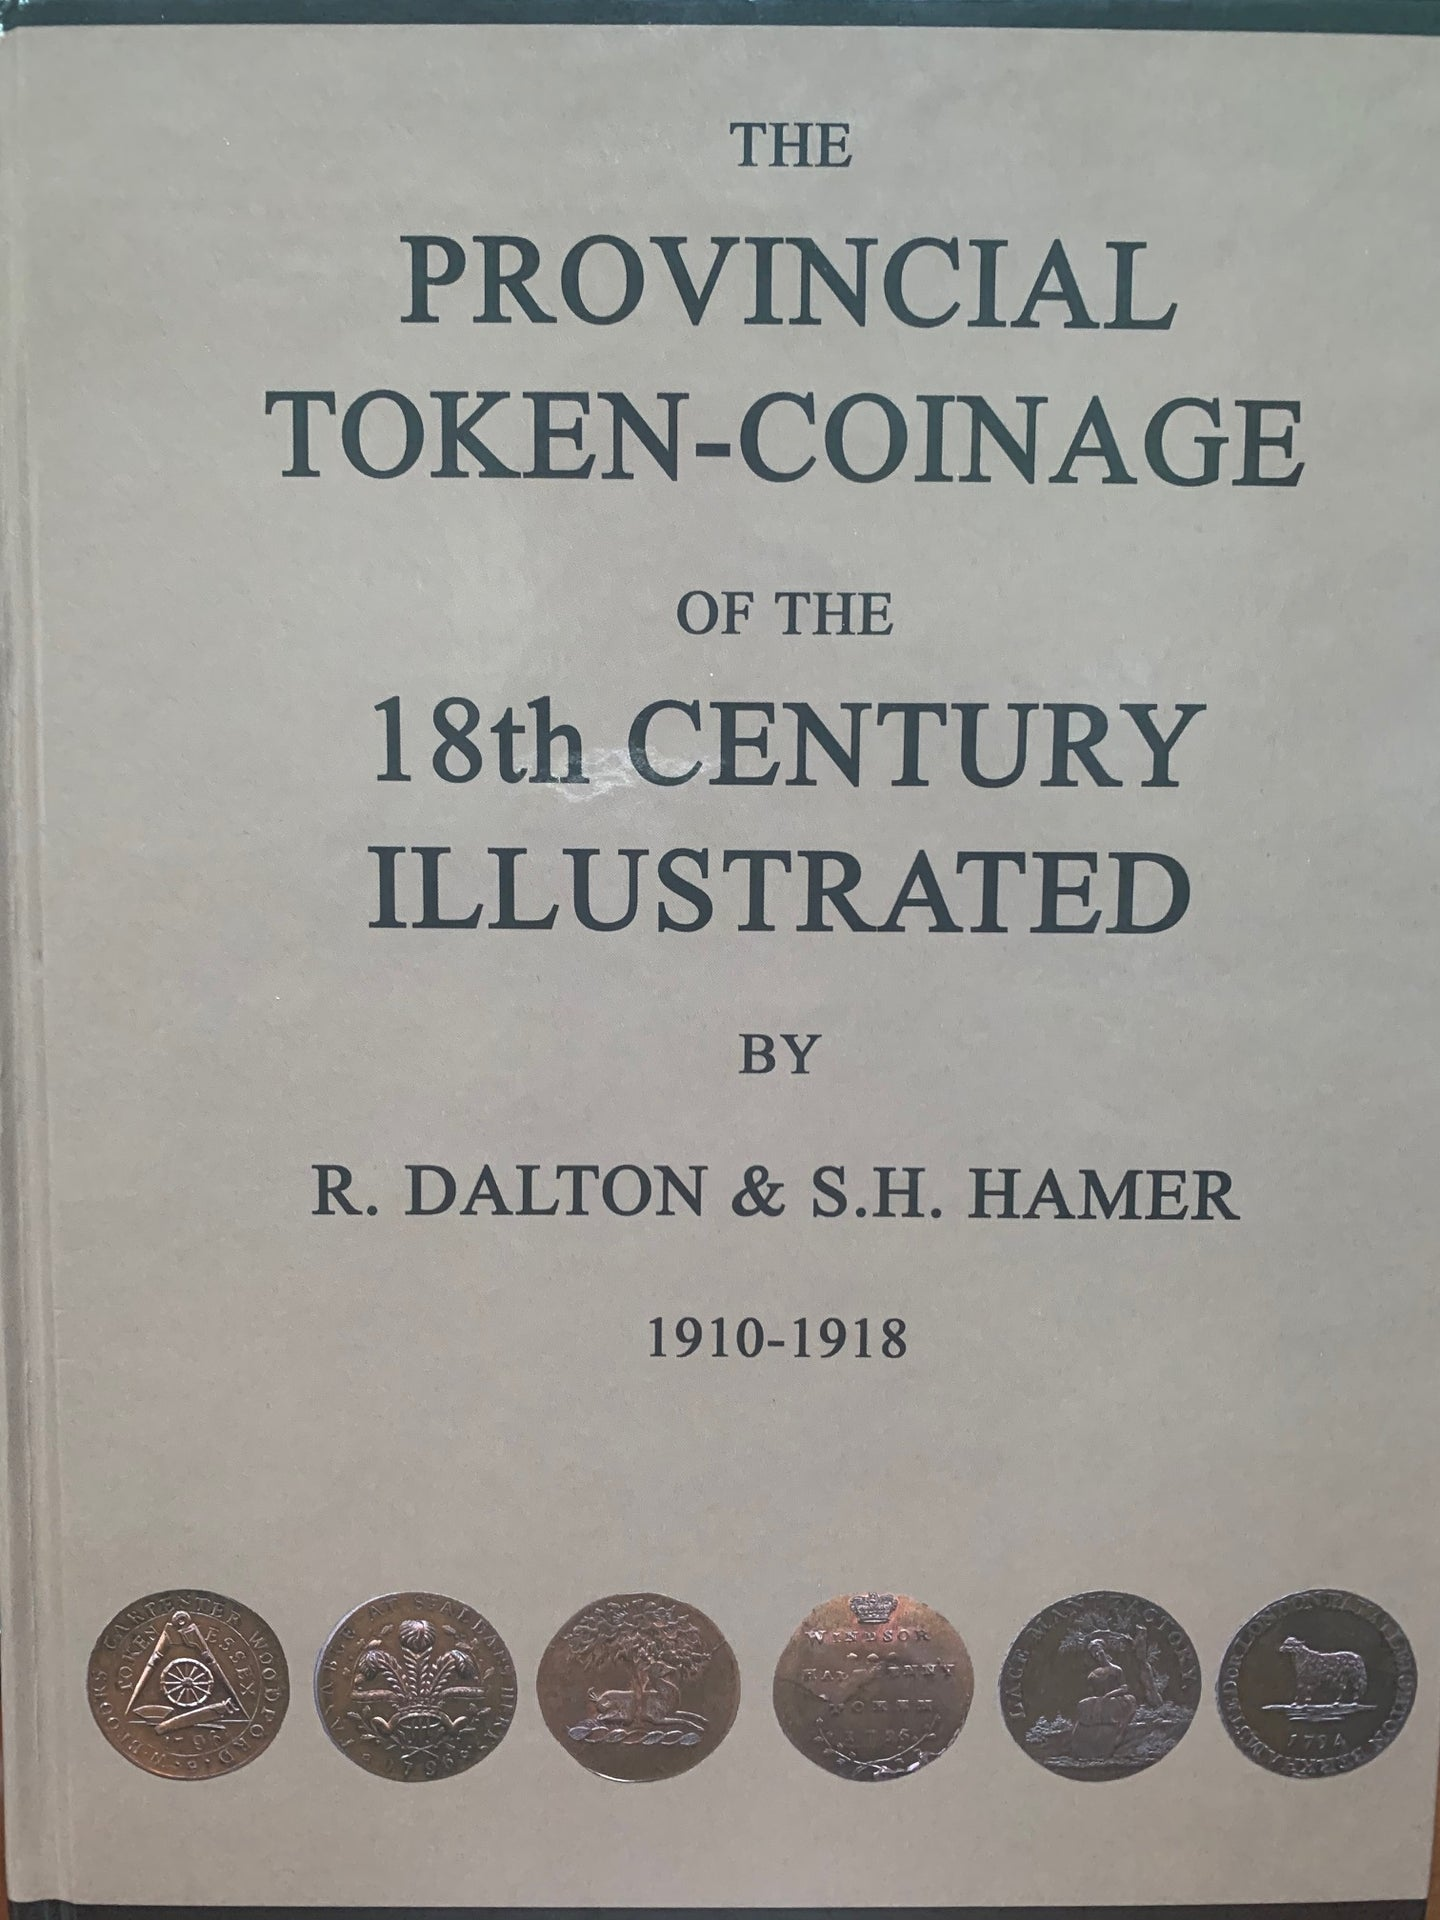 Dalton & Hamer Guide to 18th Century Provincial Tokens